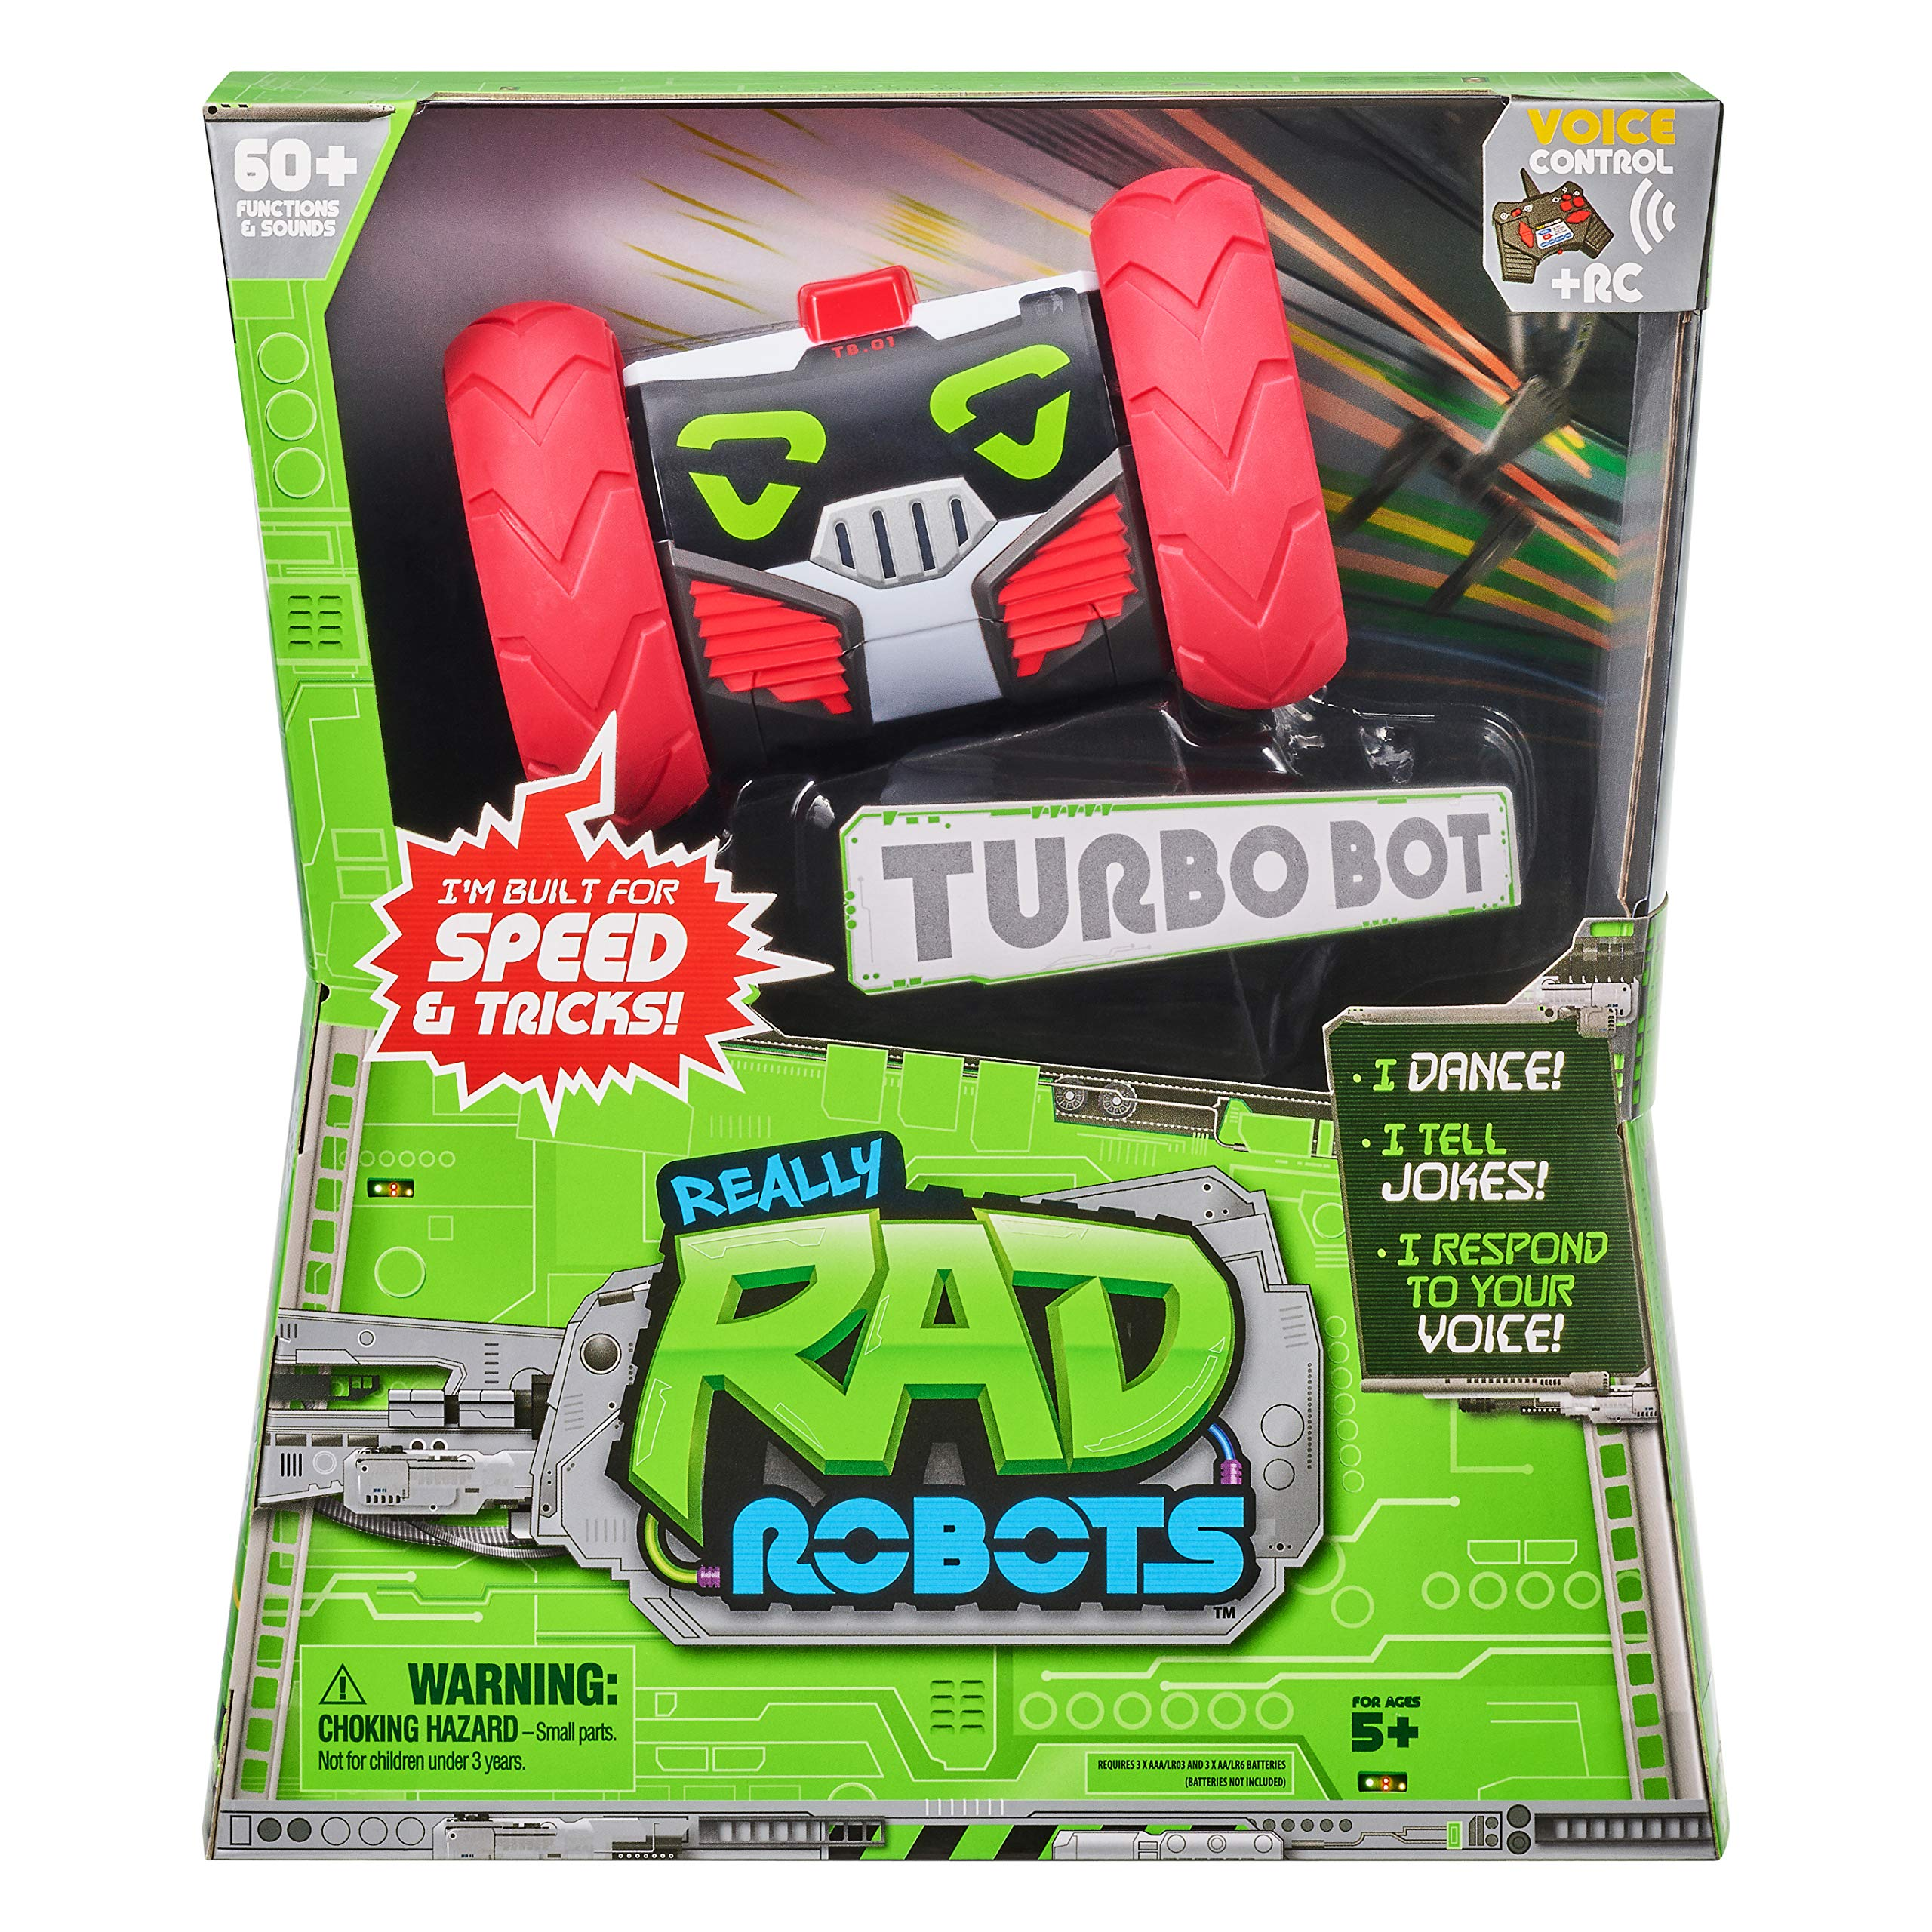 Really RAD Robots - Electronic Remote Control Robot with Voice Command - Built for Speed and Tricks - Turbo Bot - wiihuu